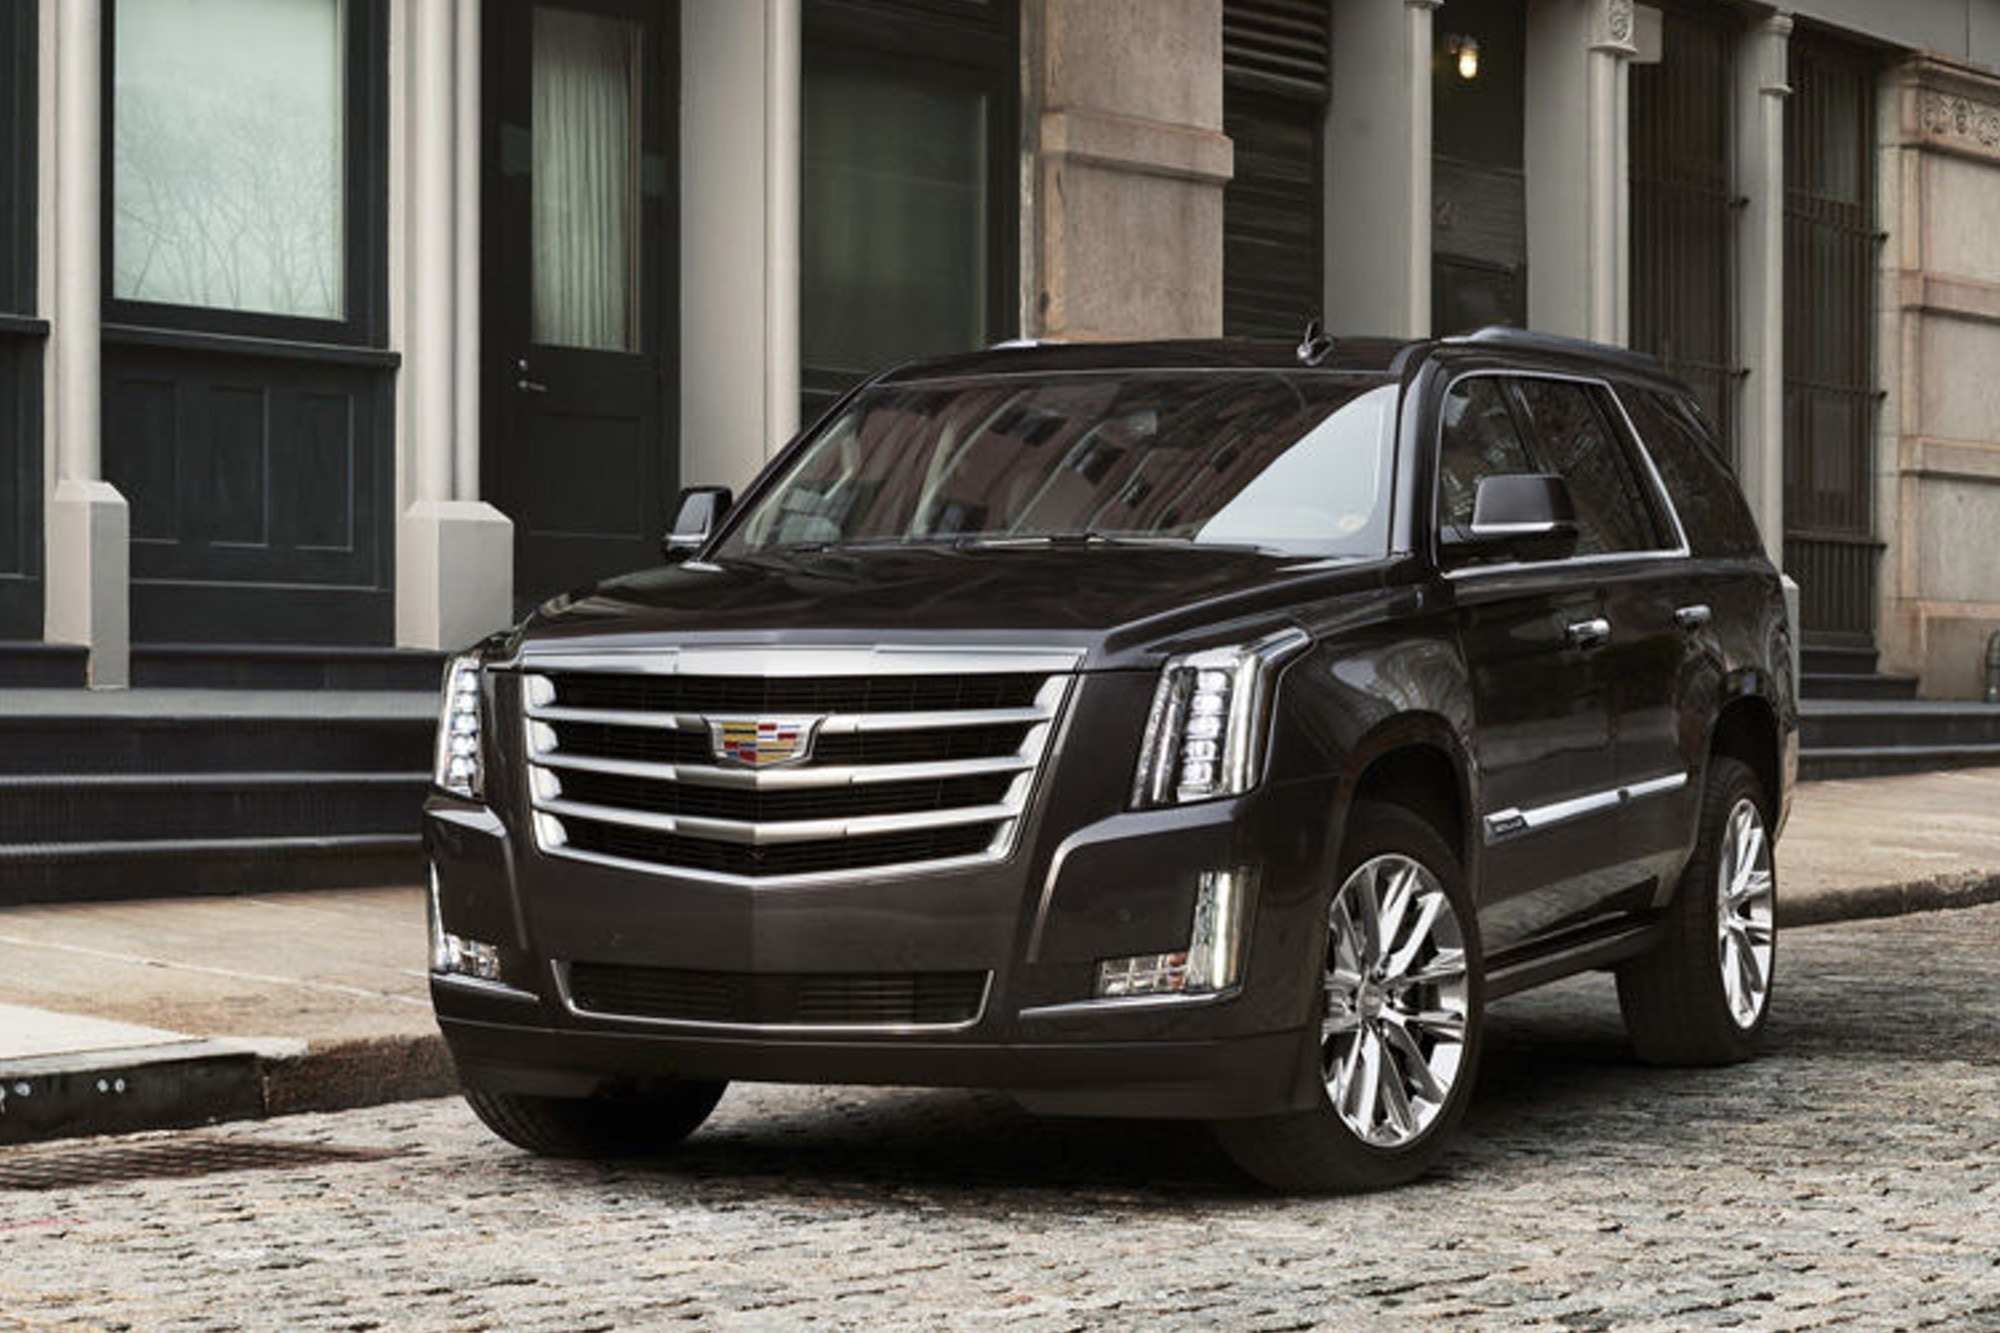 91 Best Review New 2020 Cadillac Escalade Photos with New 2020 Cadillac Escalade